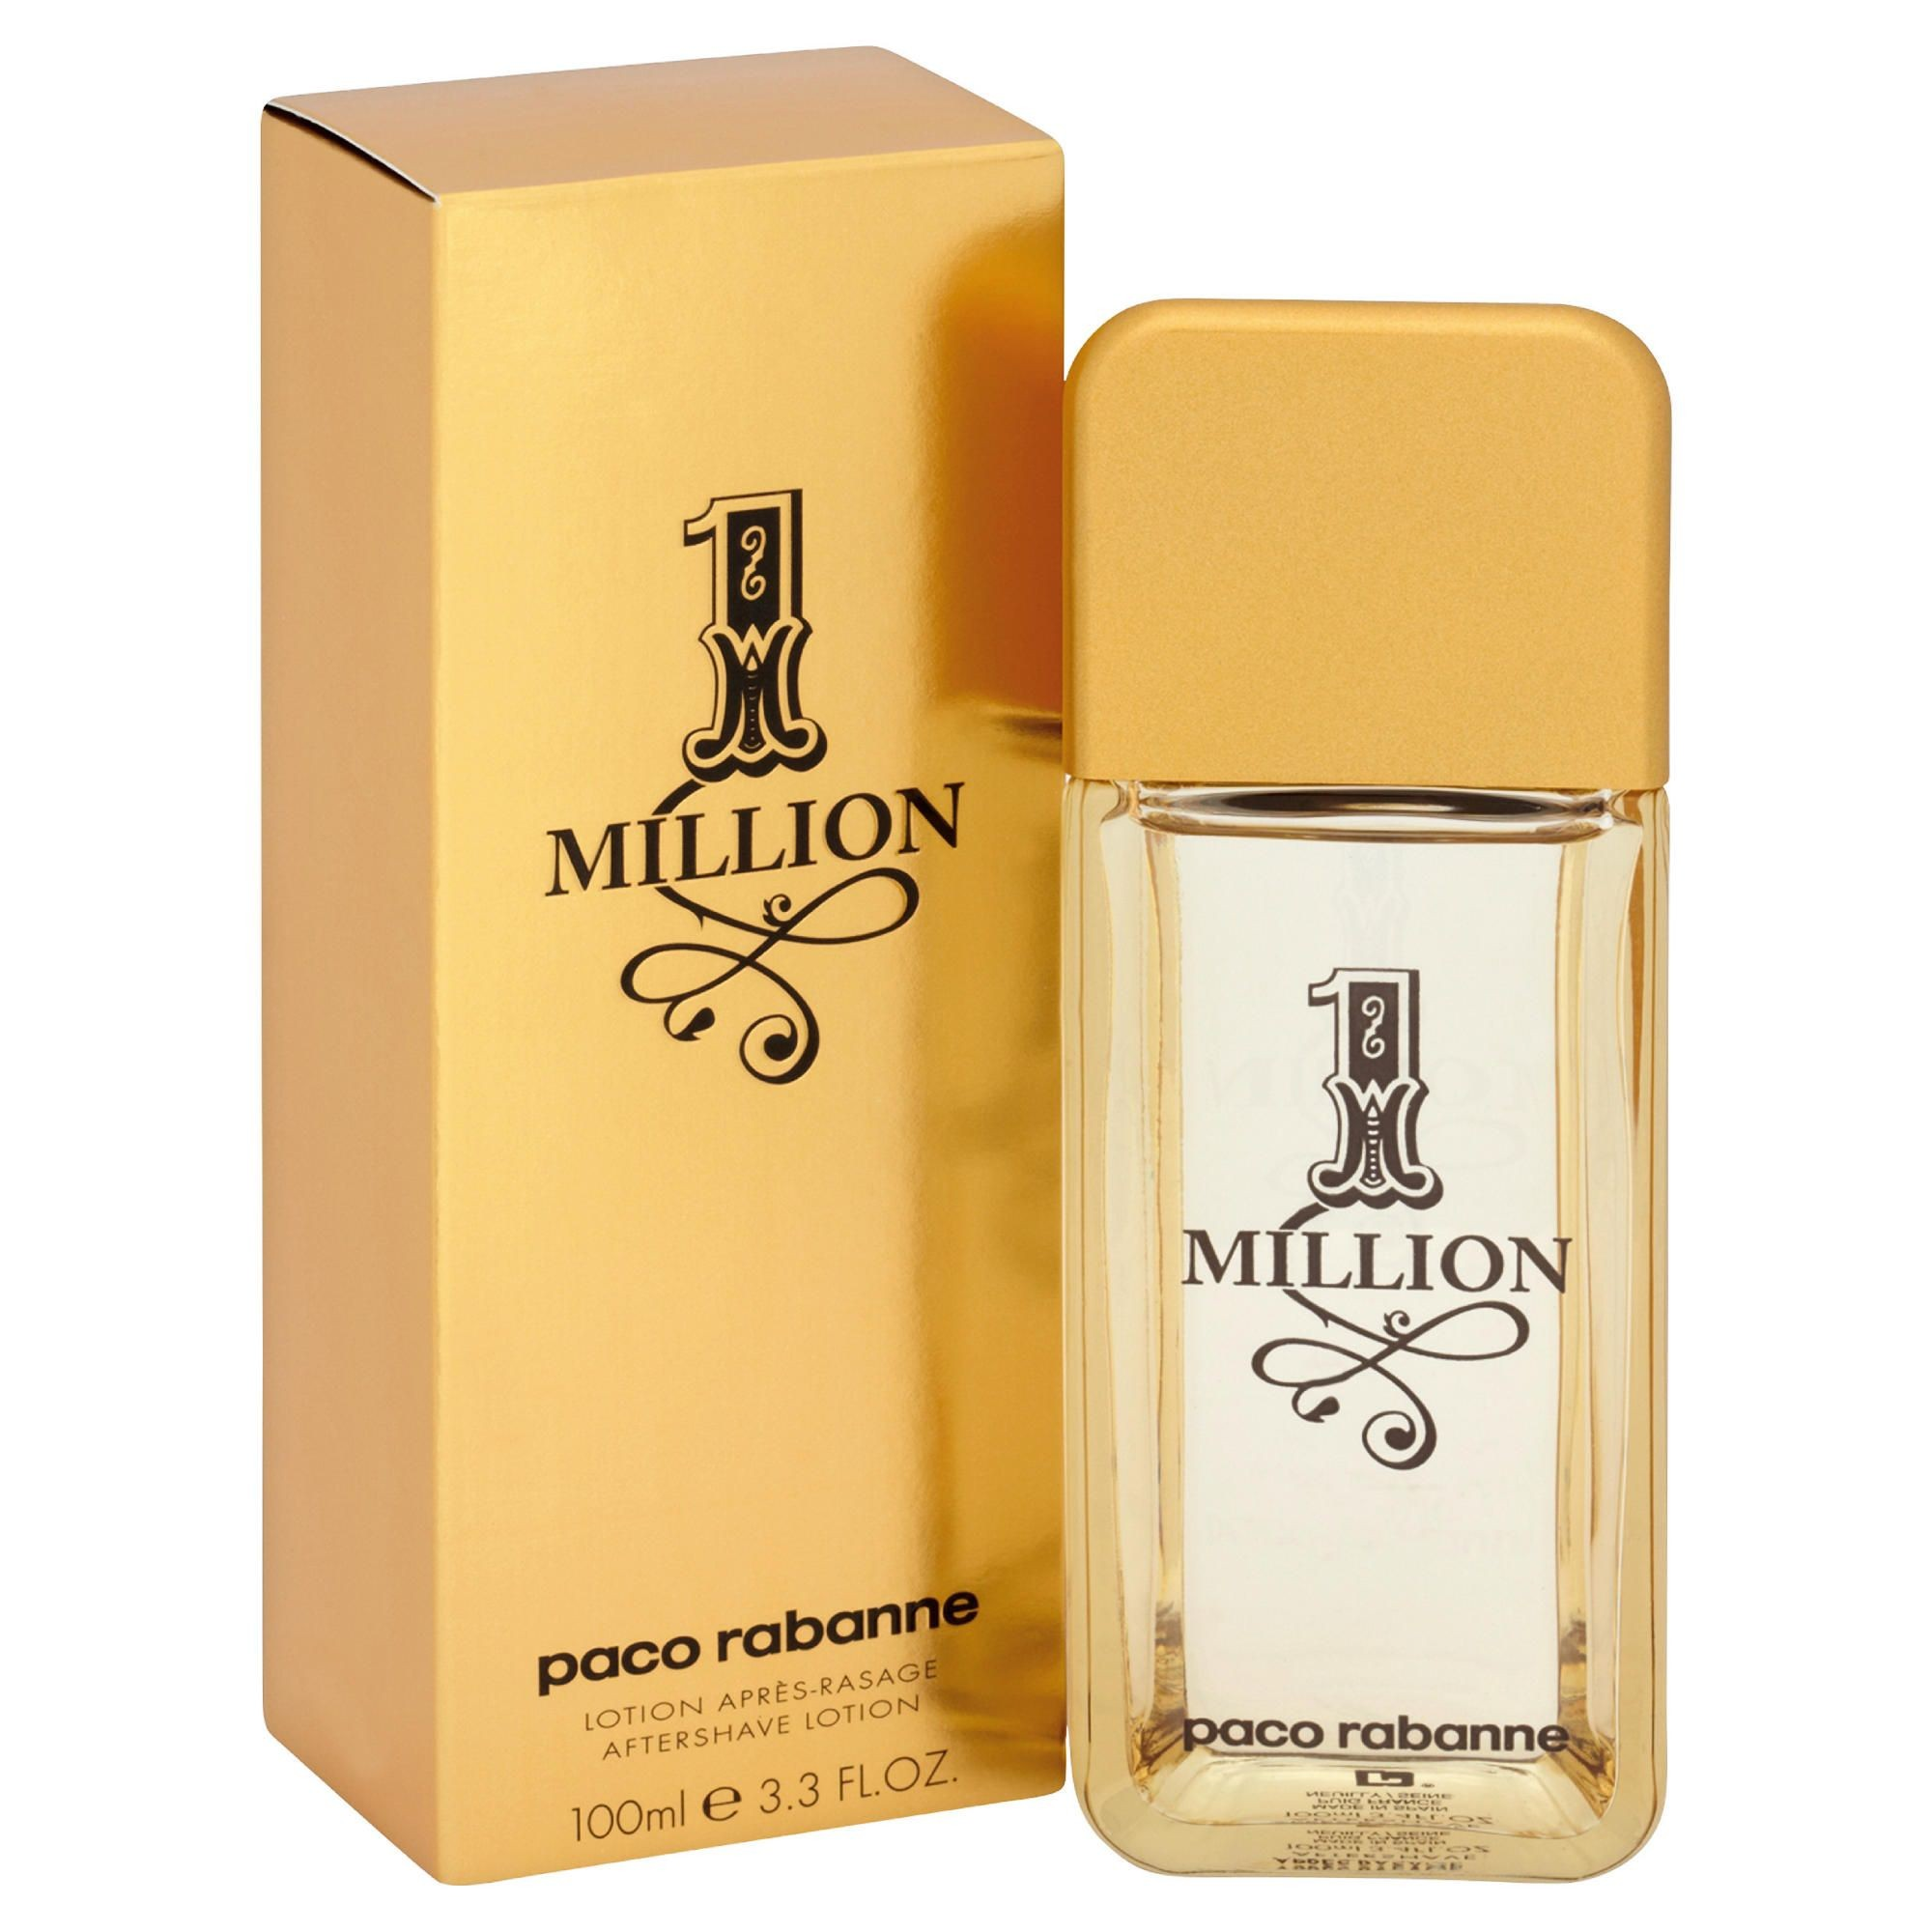 One Million Paco Rabanne after shave lozione dopobarba 100 ml